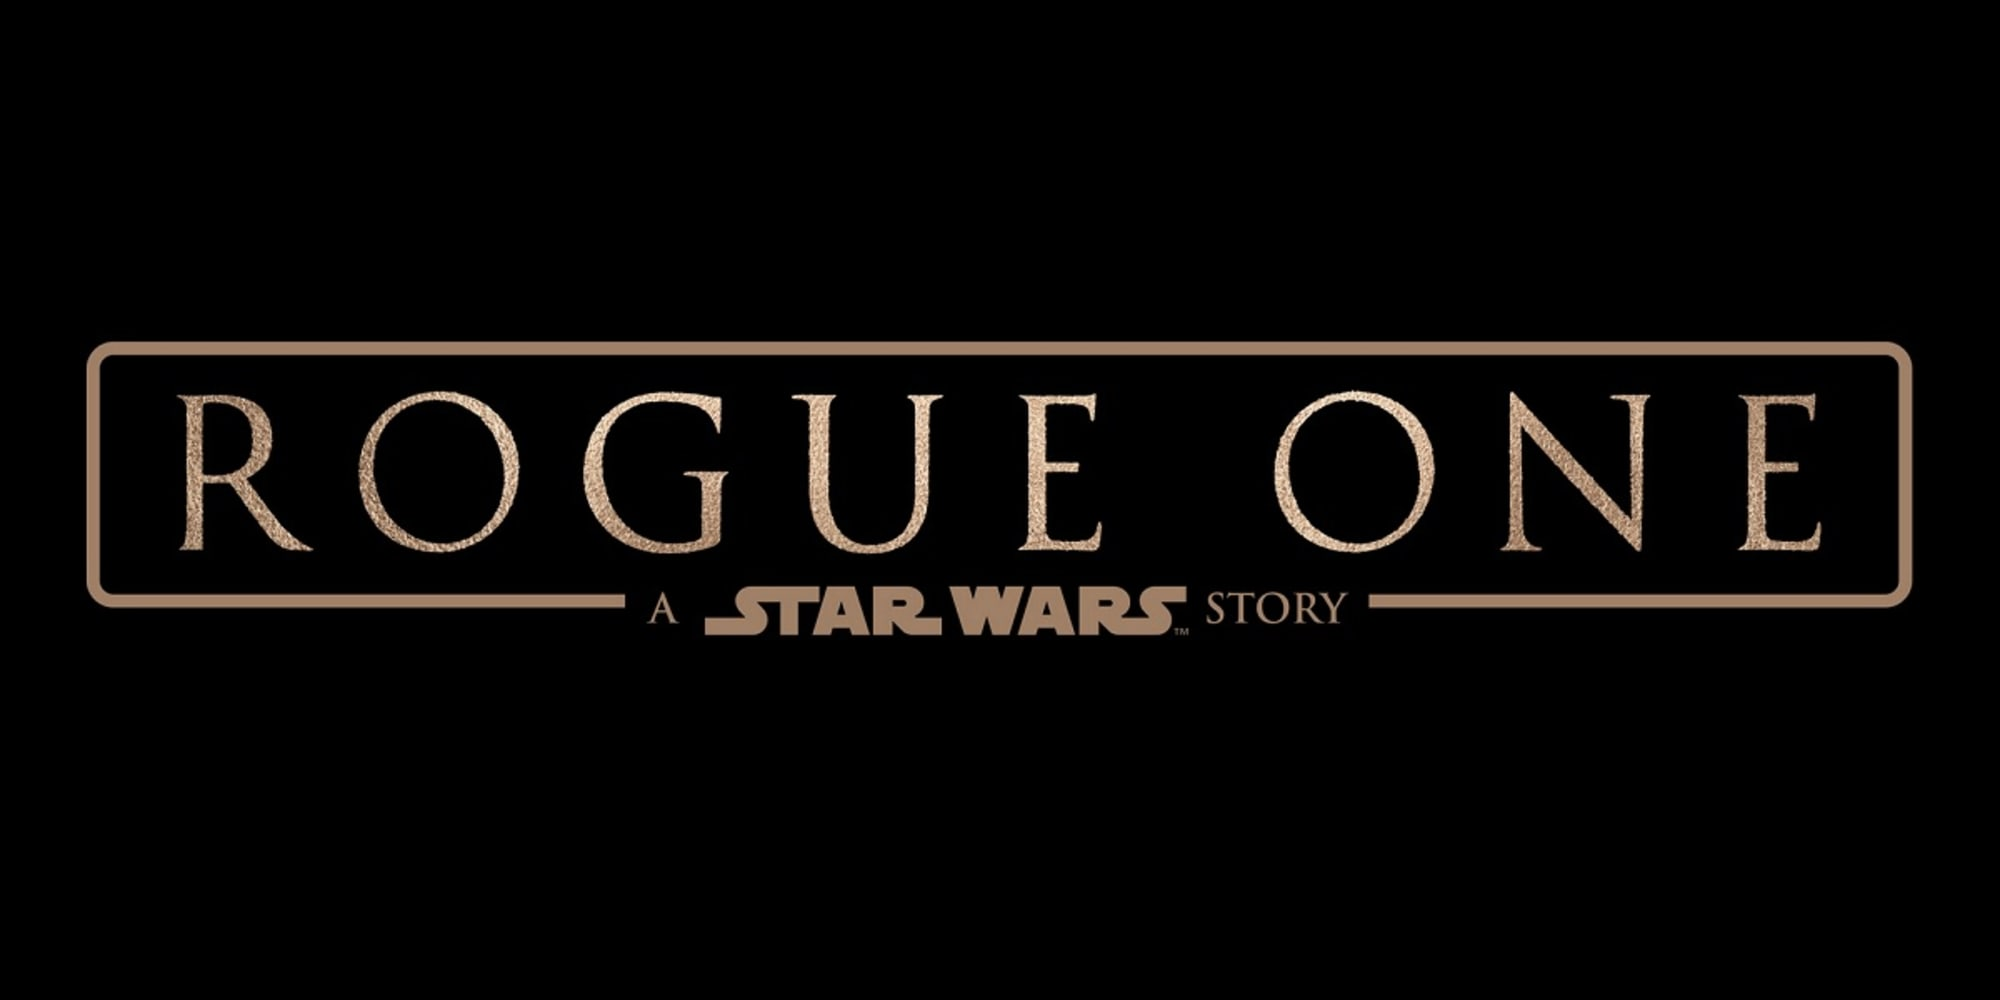 star wars rogue one stream online free